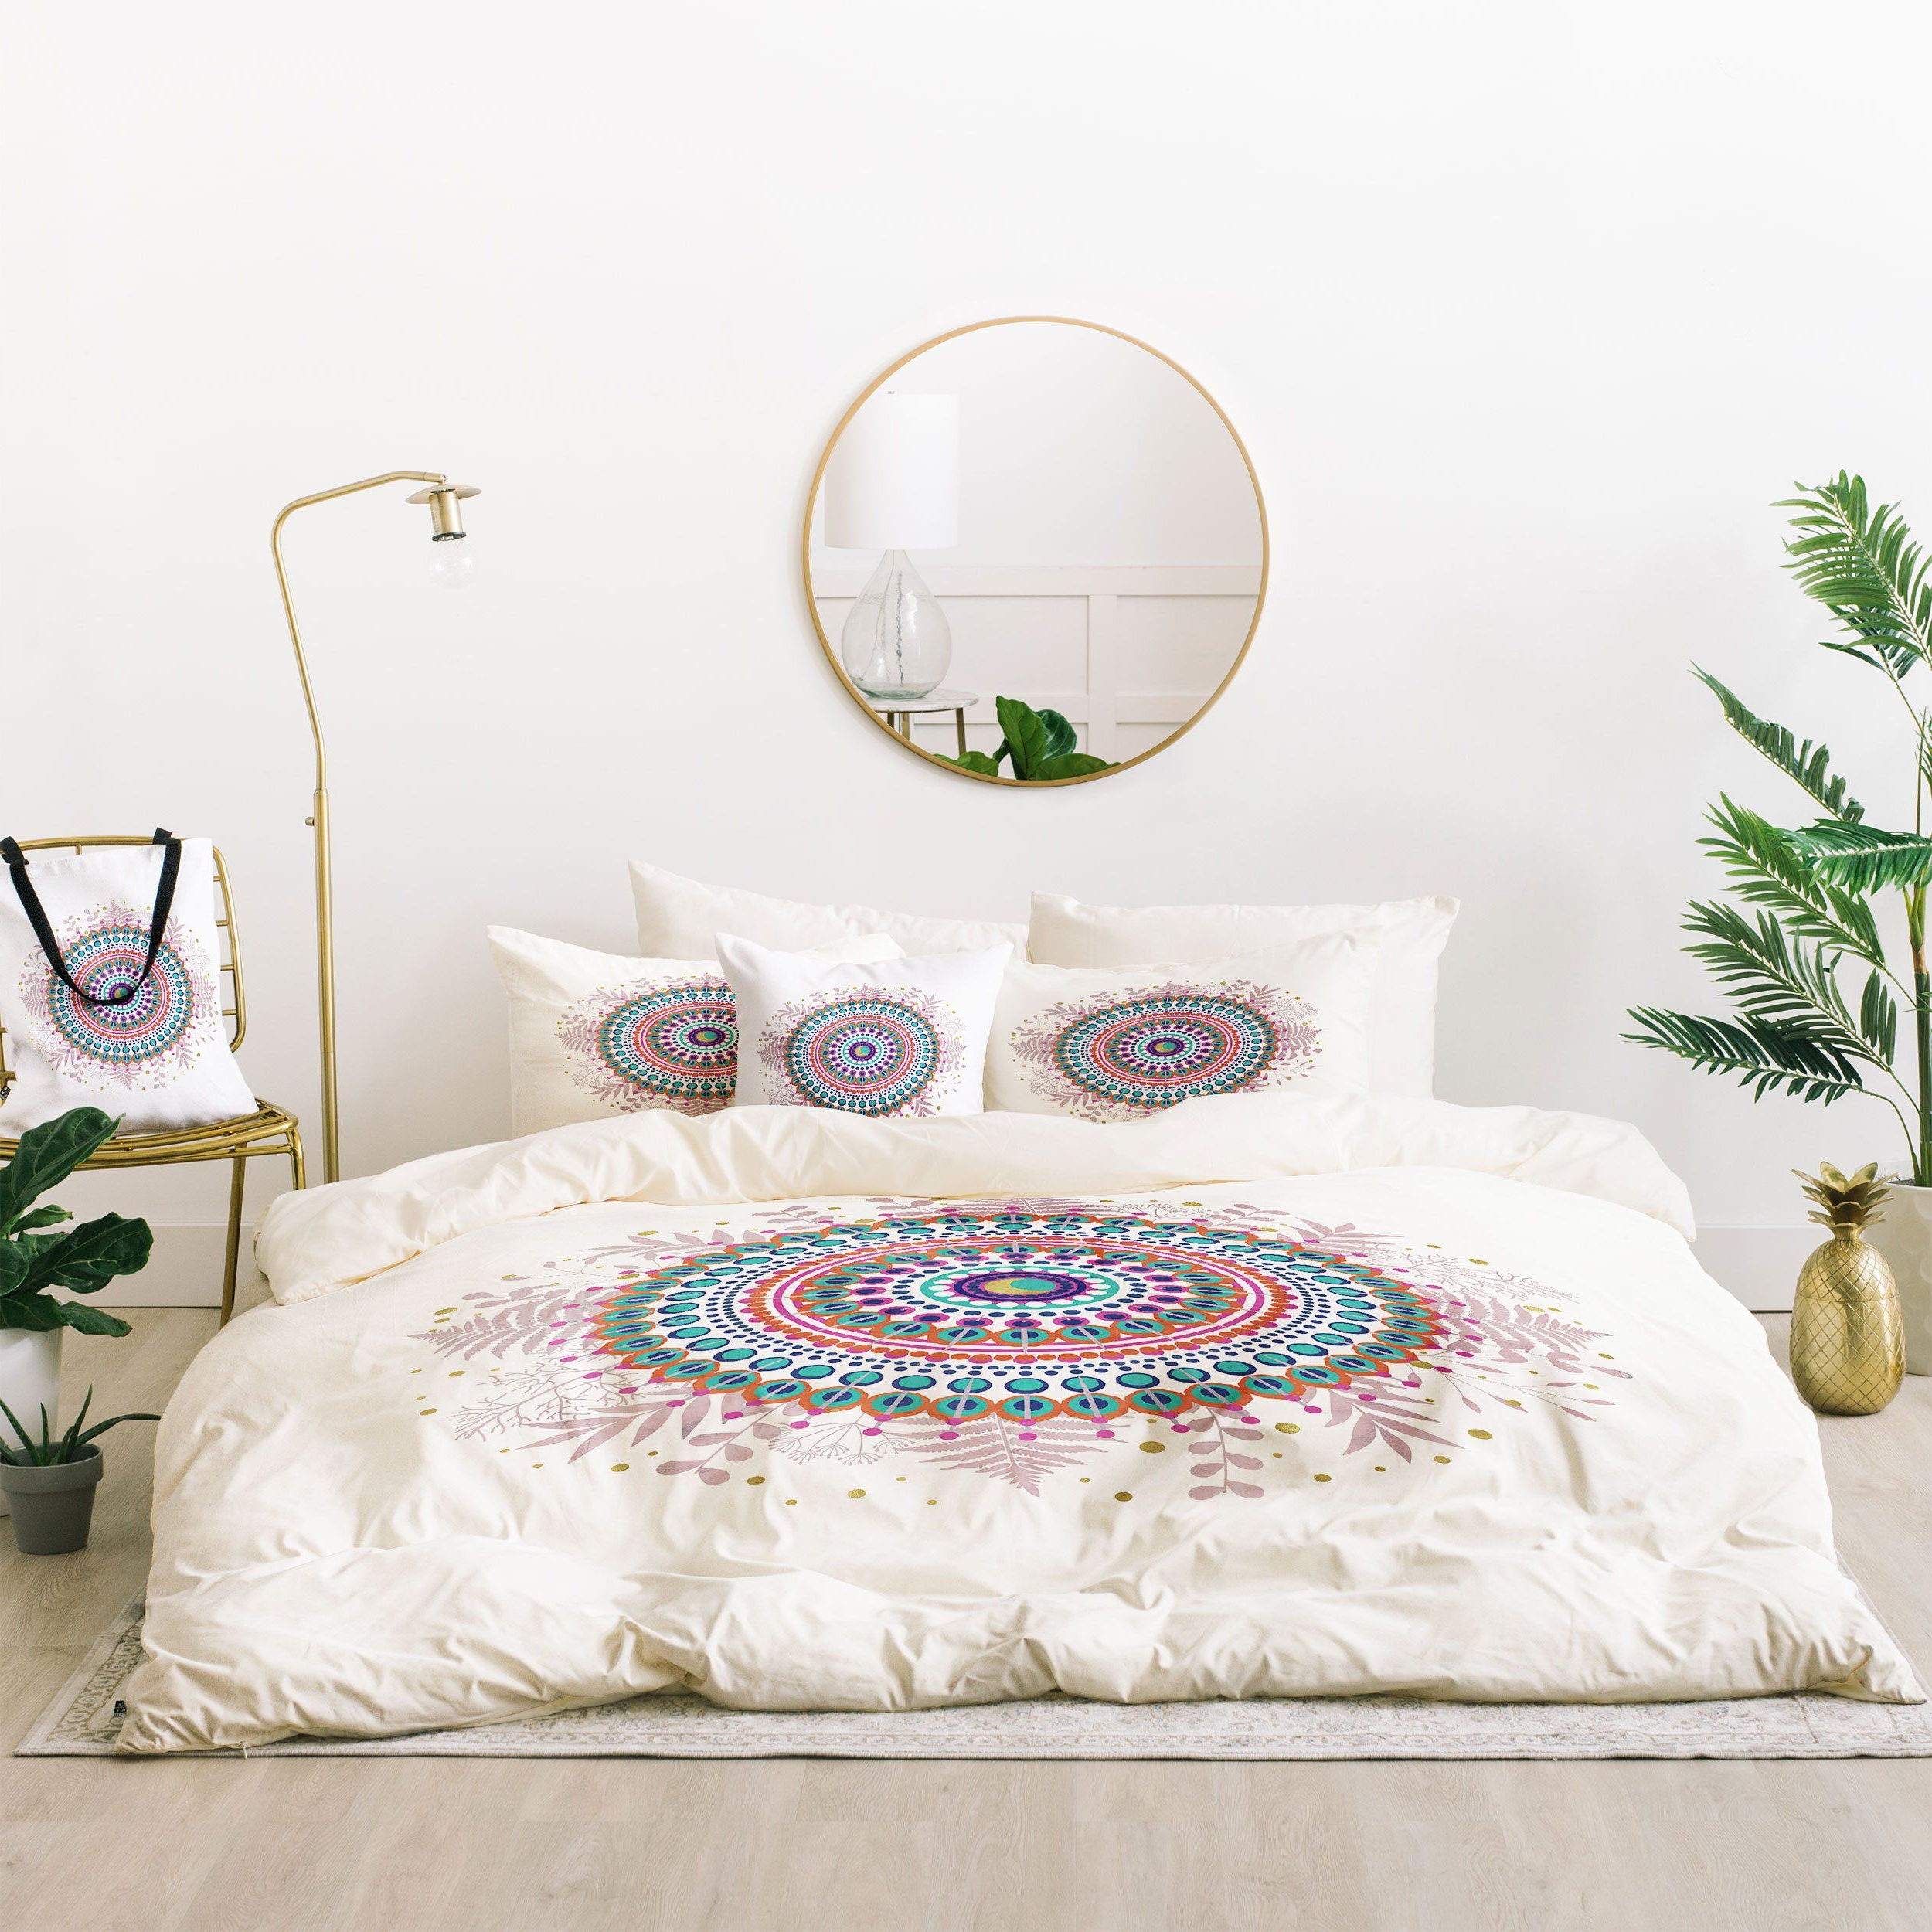 Emanuela Carratoni Boho Mandala Bed In A Bag | Cafelab's Within Desert Crystals Theme Credenzas (View 19 of 20)